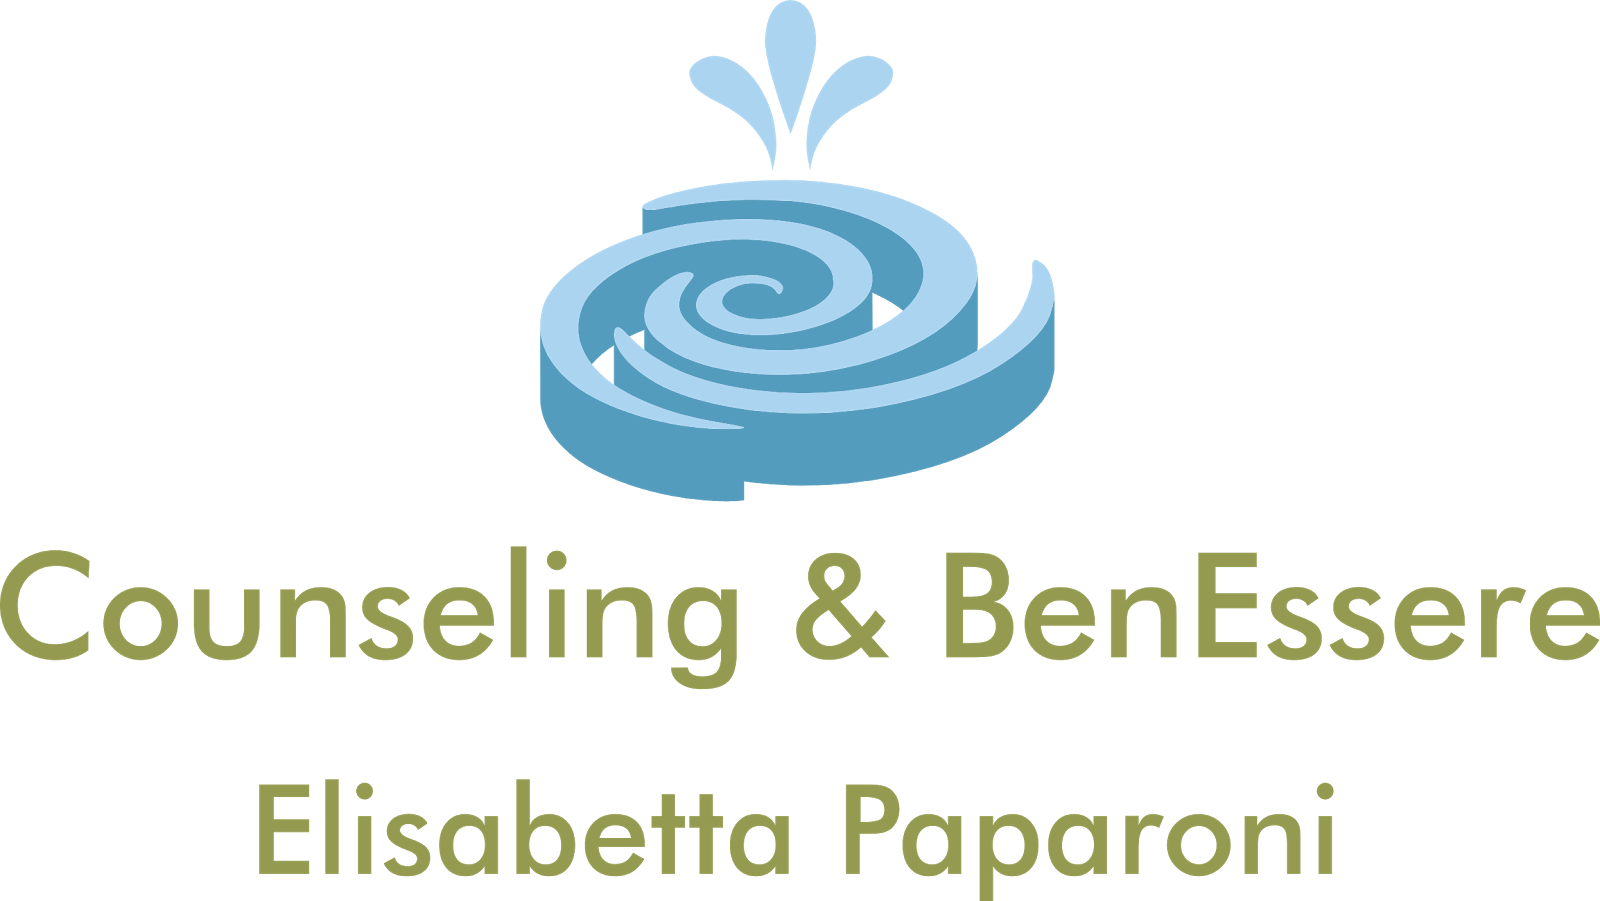 Counseling&BenEssere